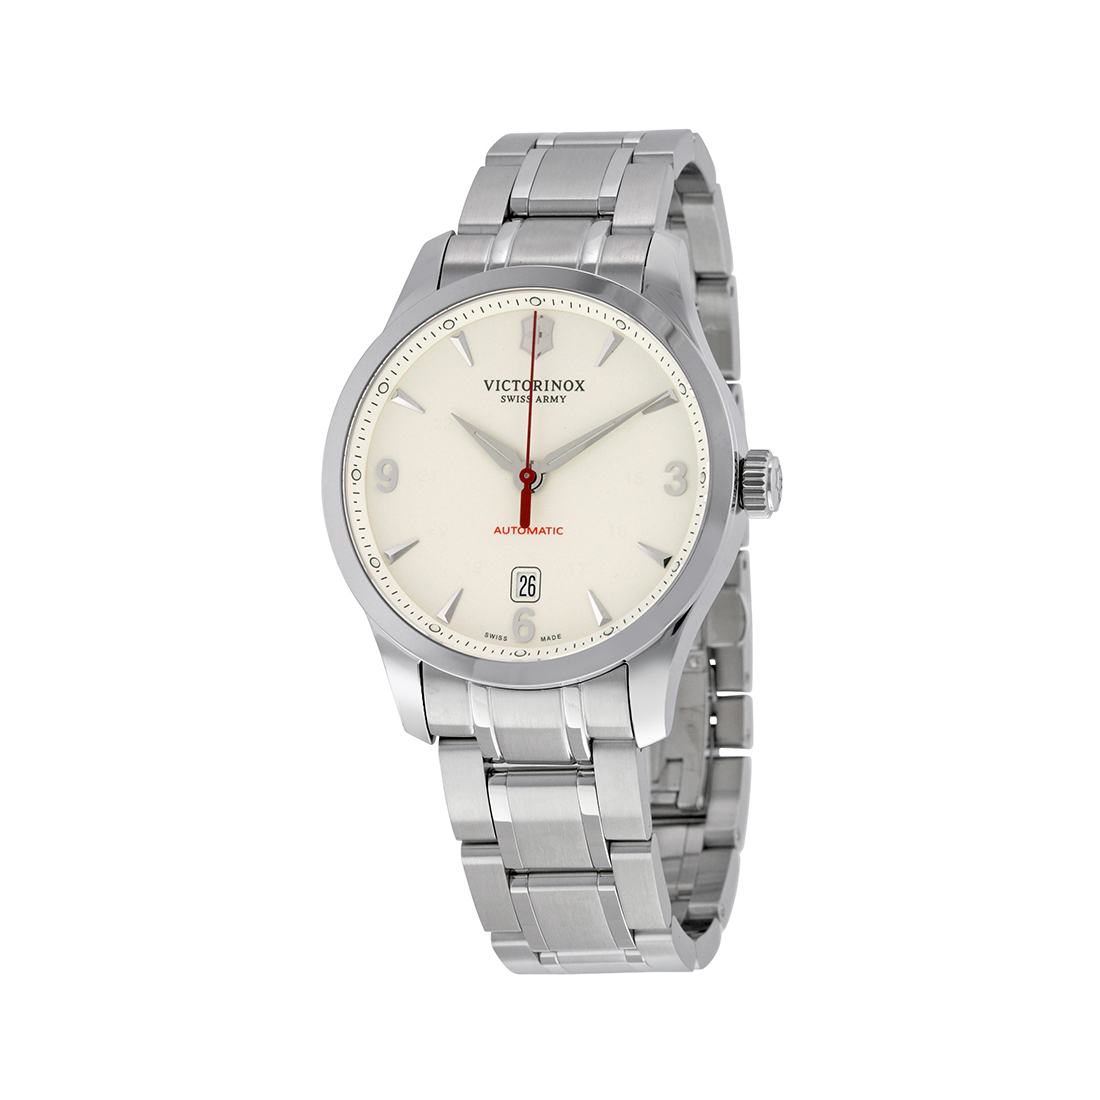 Swiss Army Men's Watch Alliance Mechanical Automatic Silver Dial 241667 by Victorinox